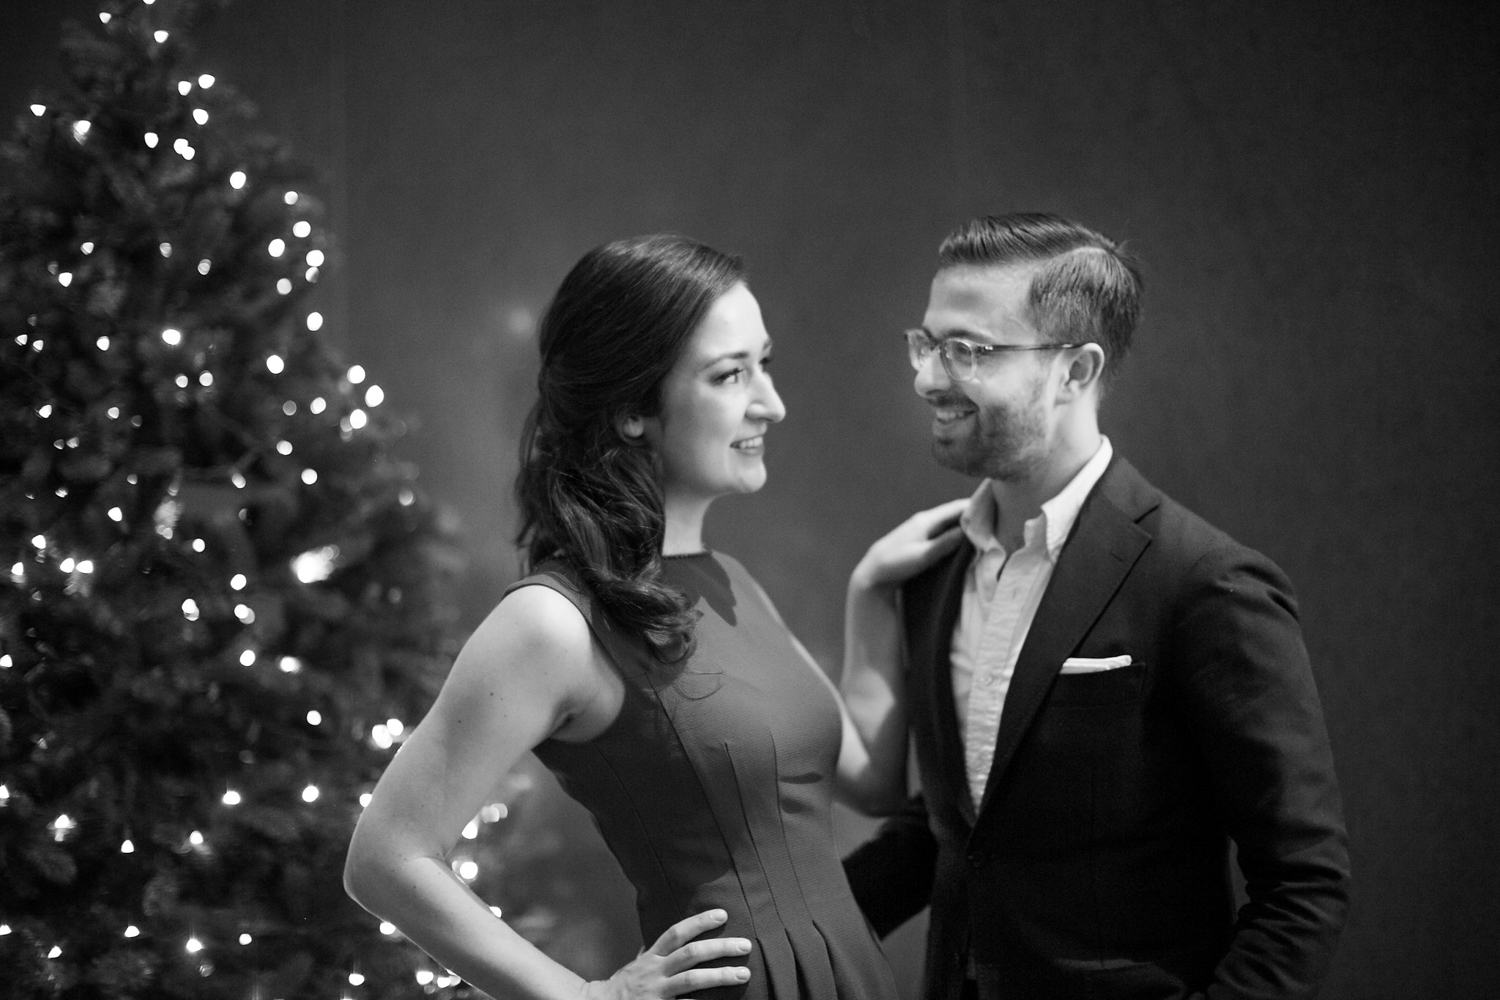 Black and white portrait of New York City engaged couple